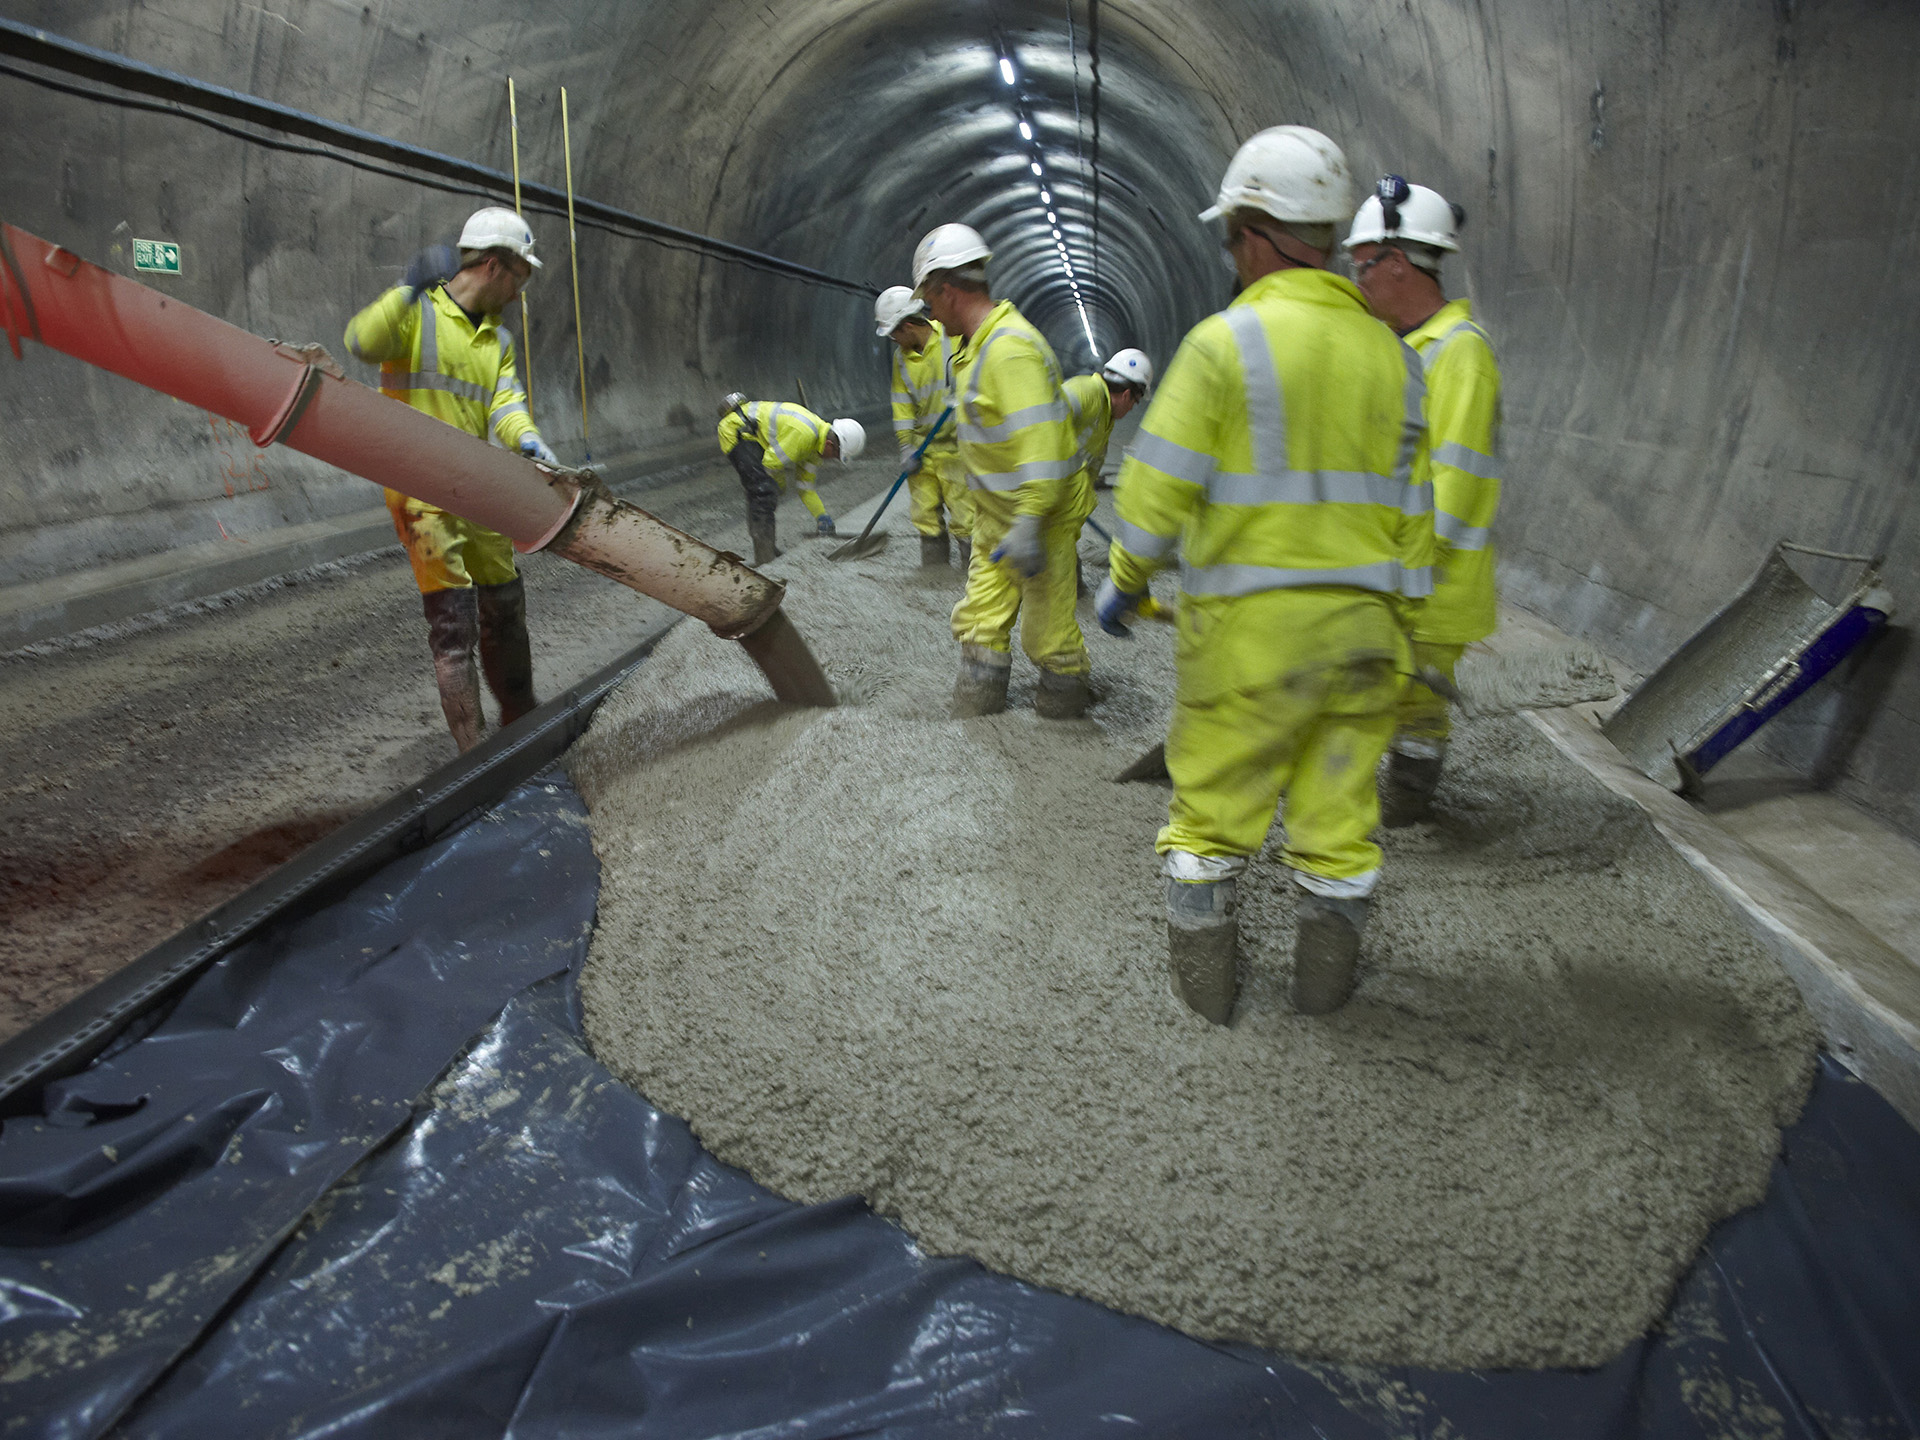 concrete flooring contractors at work in a tunnel